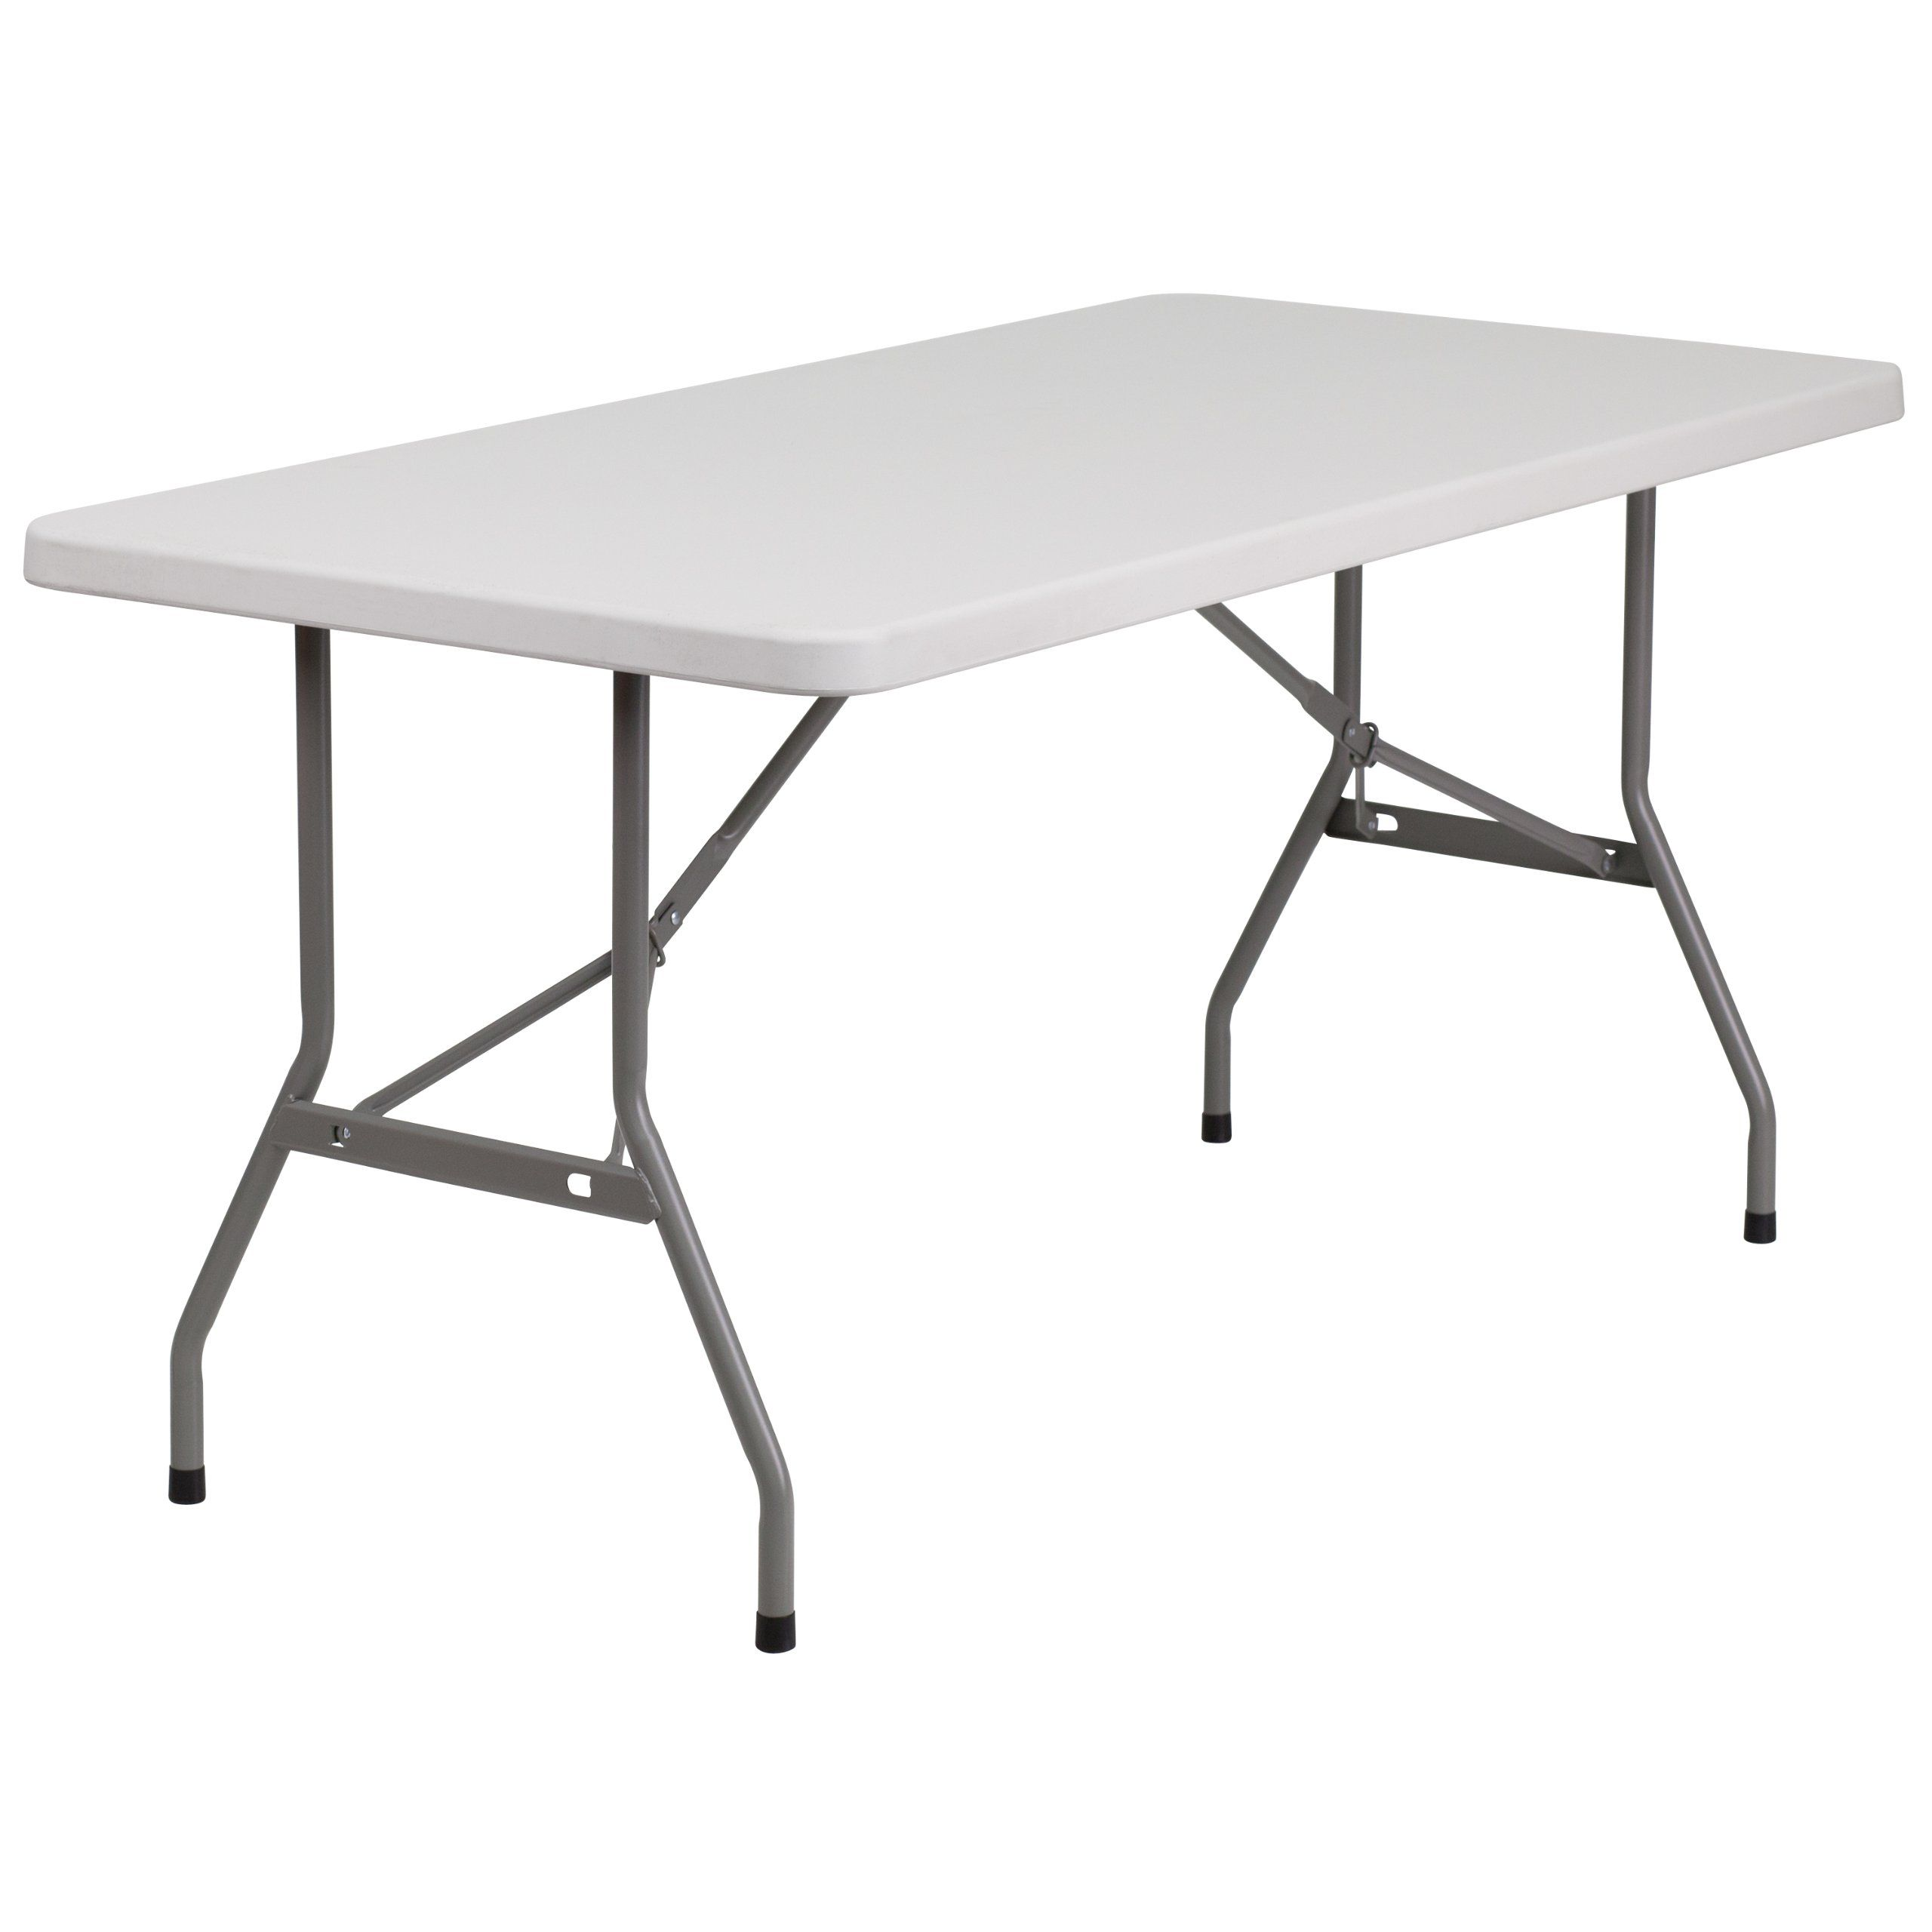 Flash Furniture Rb 3060 Gg 30 Inch Width By 60 Inch Length Blow Molded Plastic Folding Table Gray White Folding Table Flash Furniture Furniture